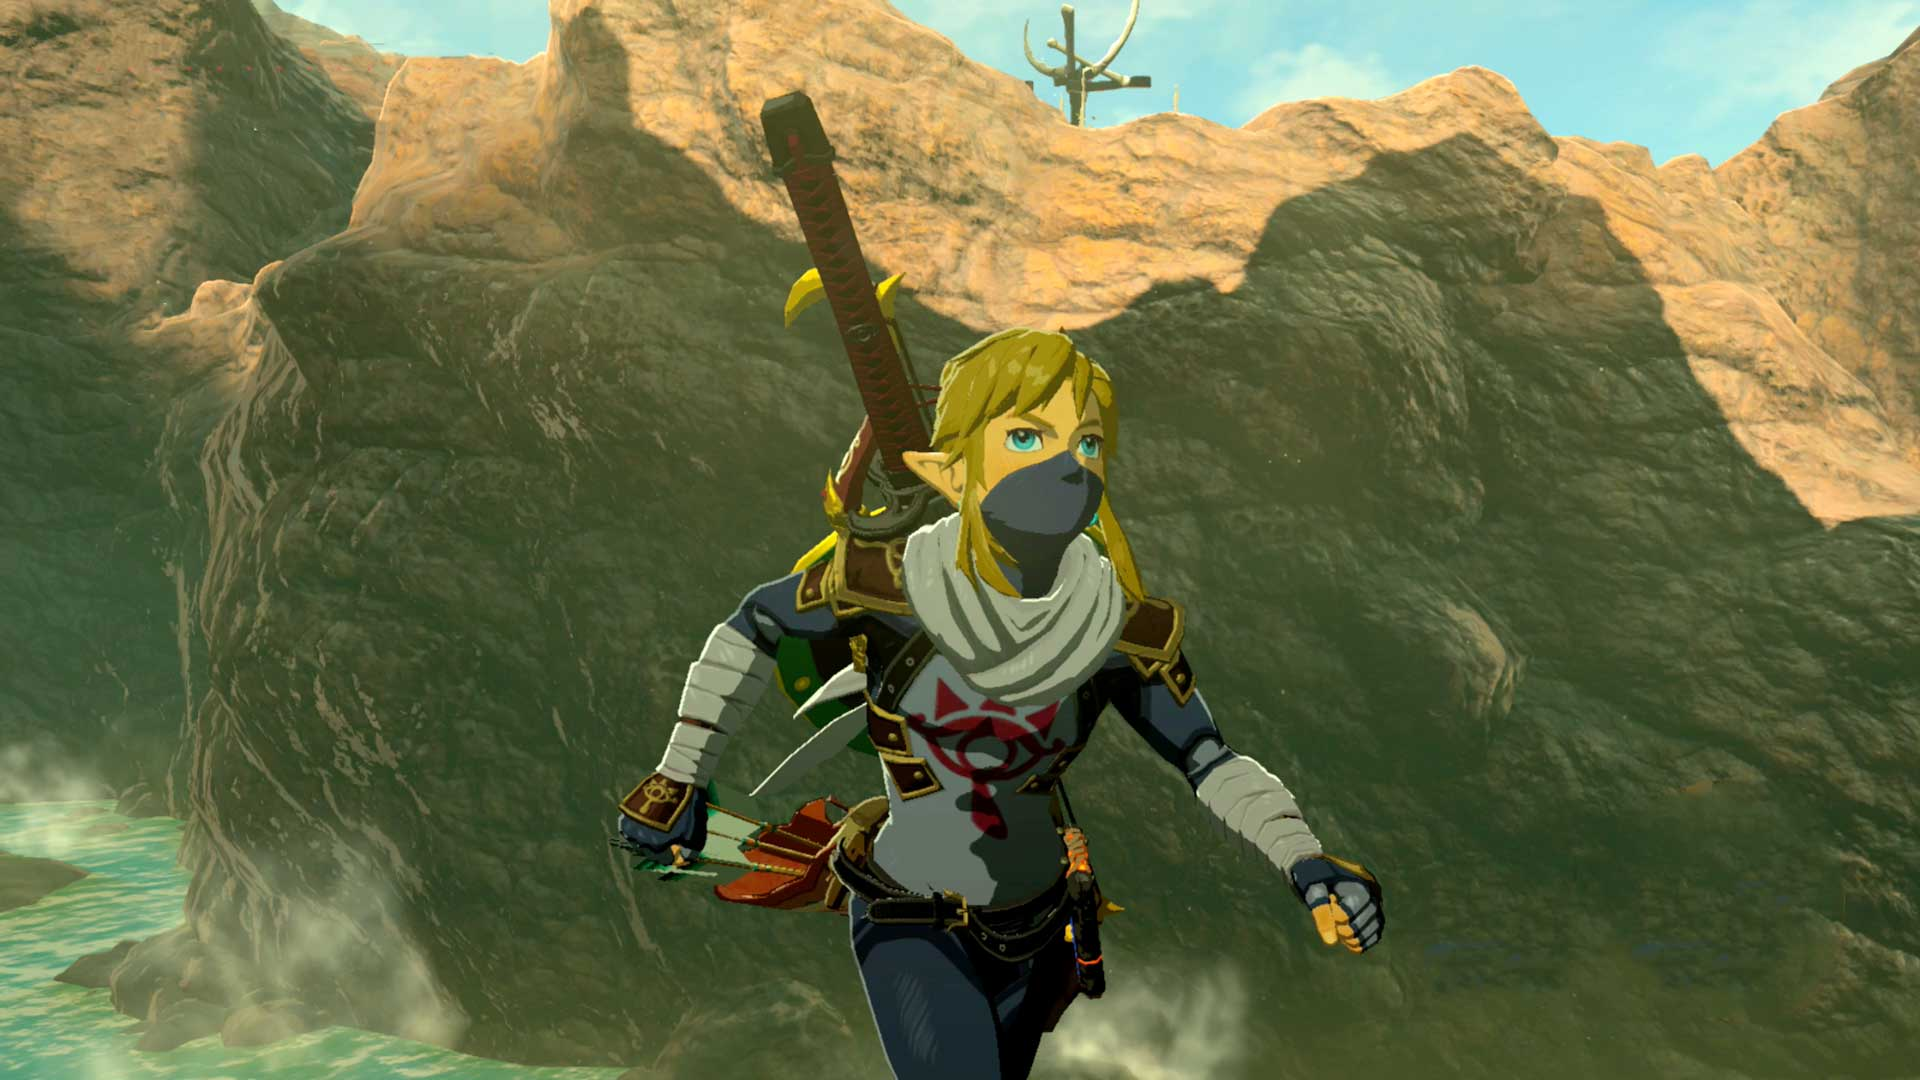 Zelda: Breath of the Wild cooking guide: 10 recipes worth remembering